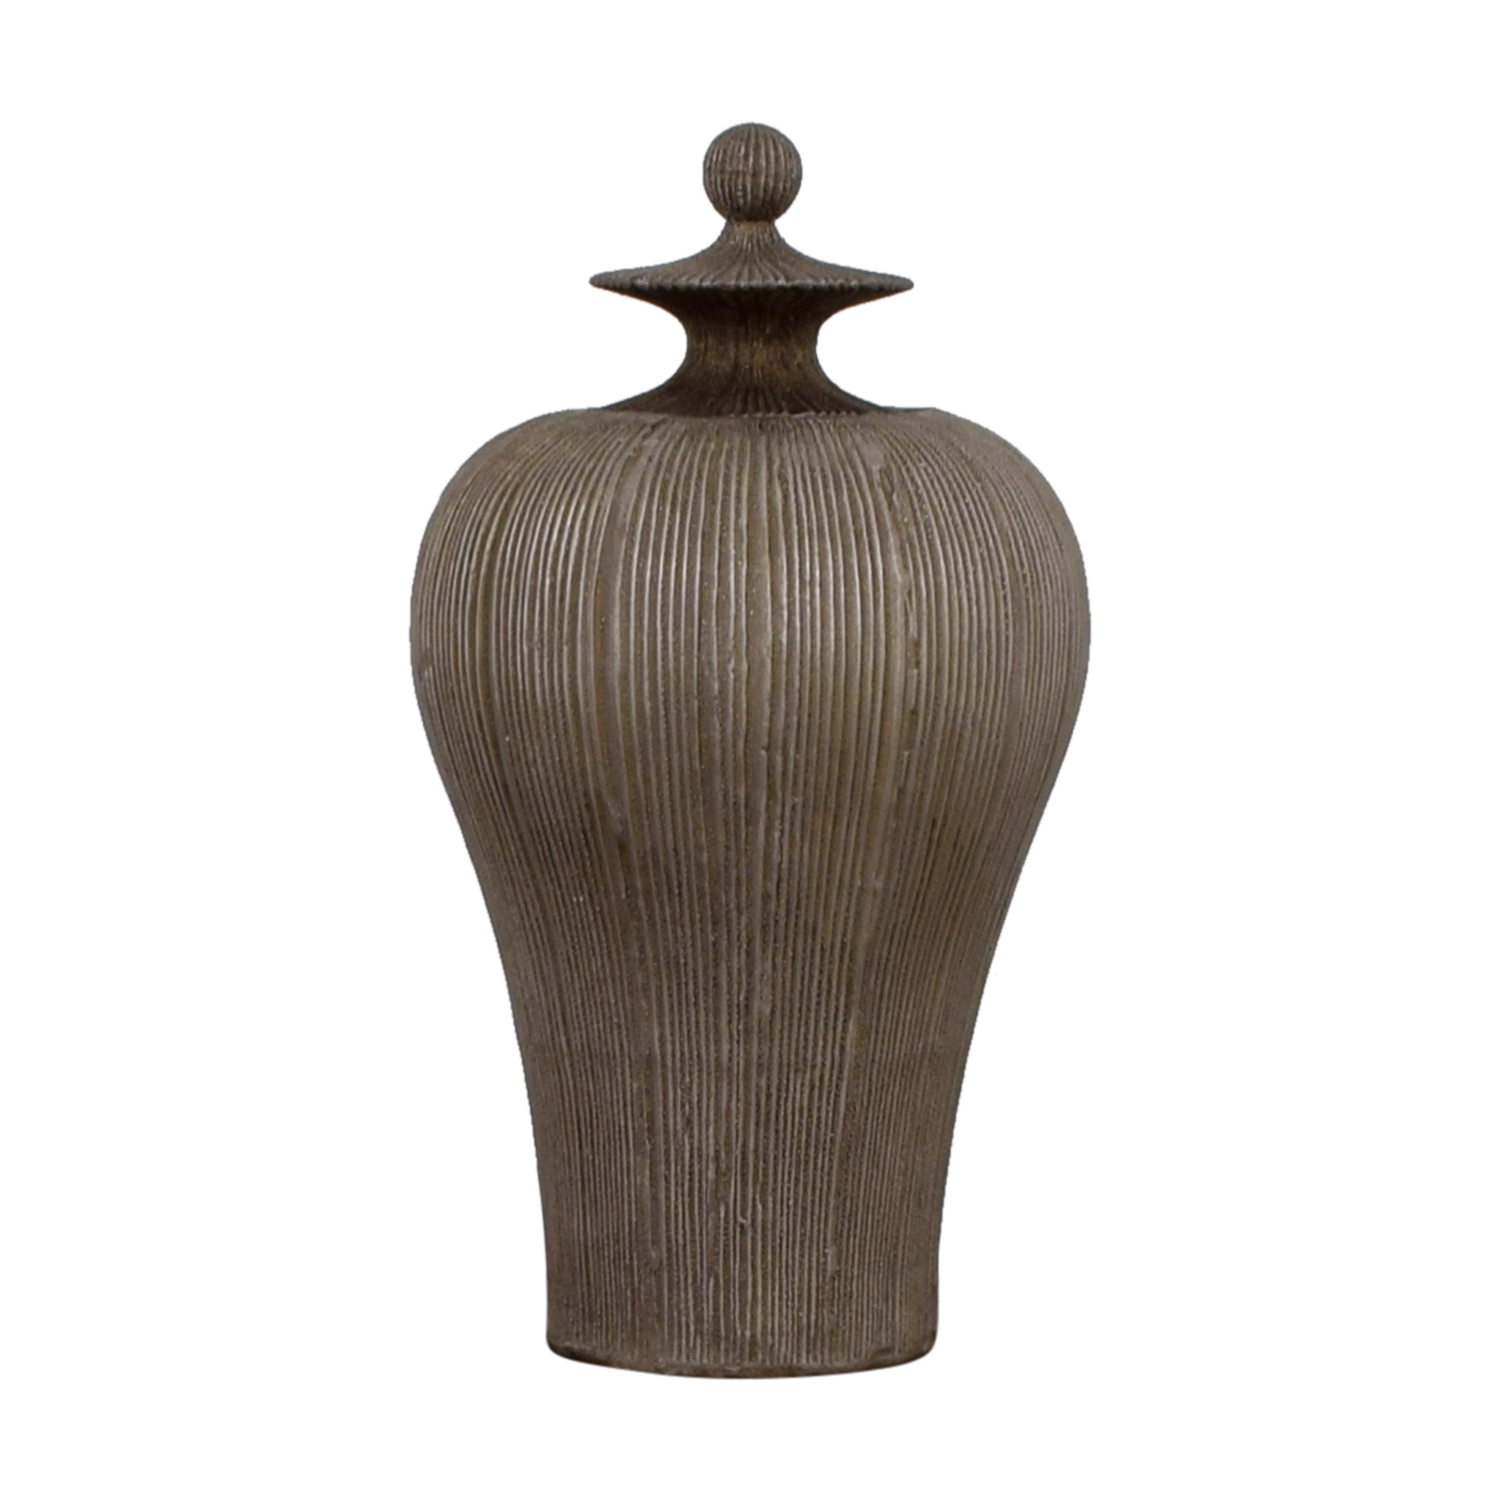 Dark Gold Urn / Decorative Accents